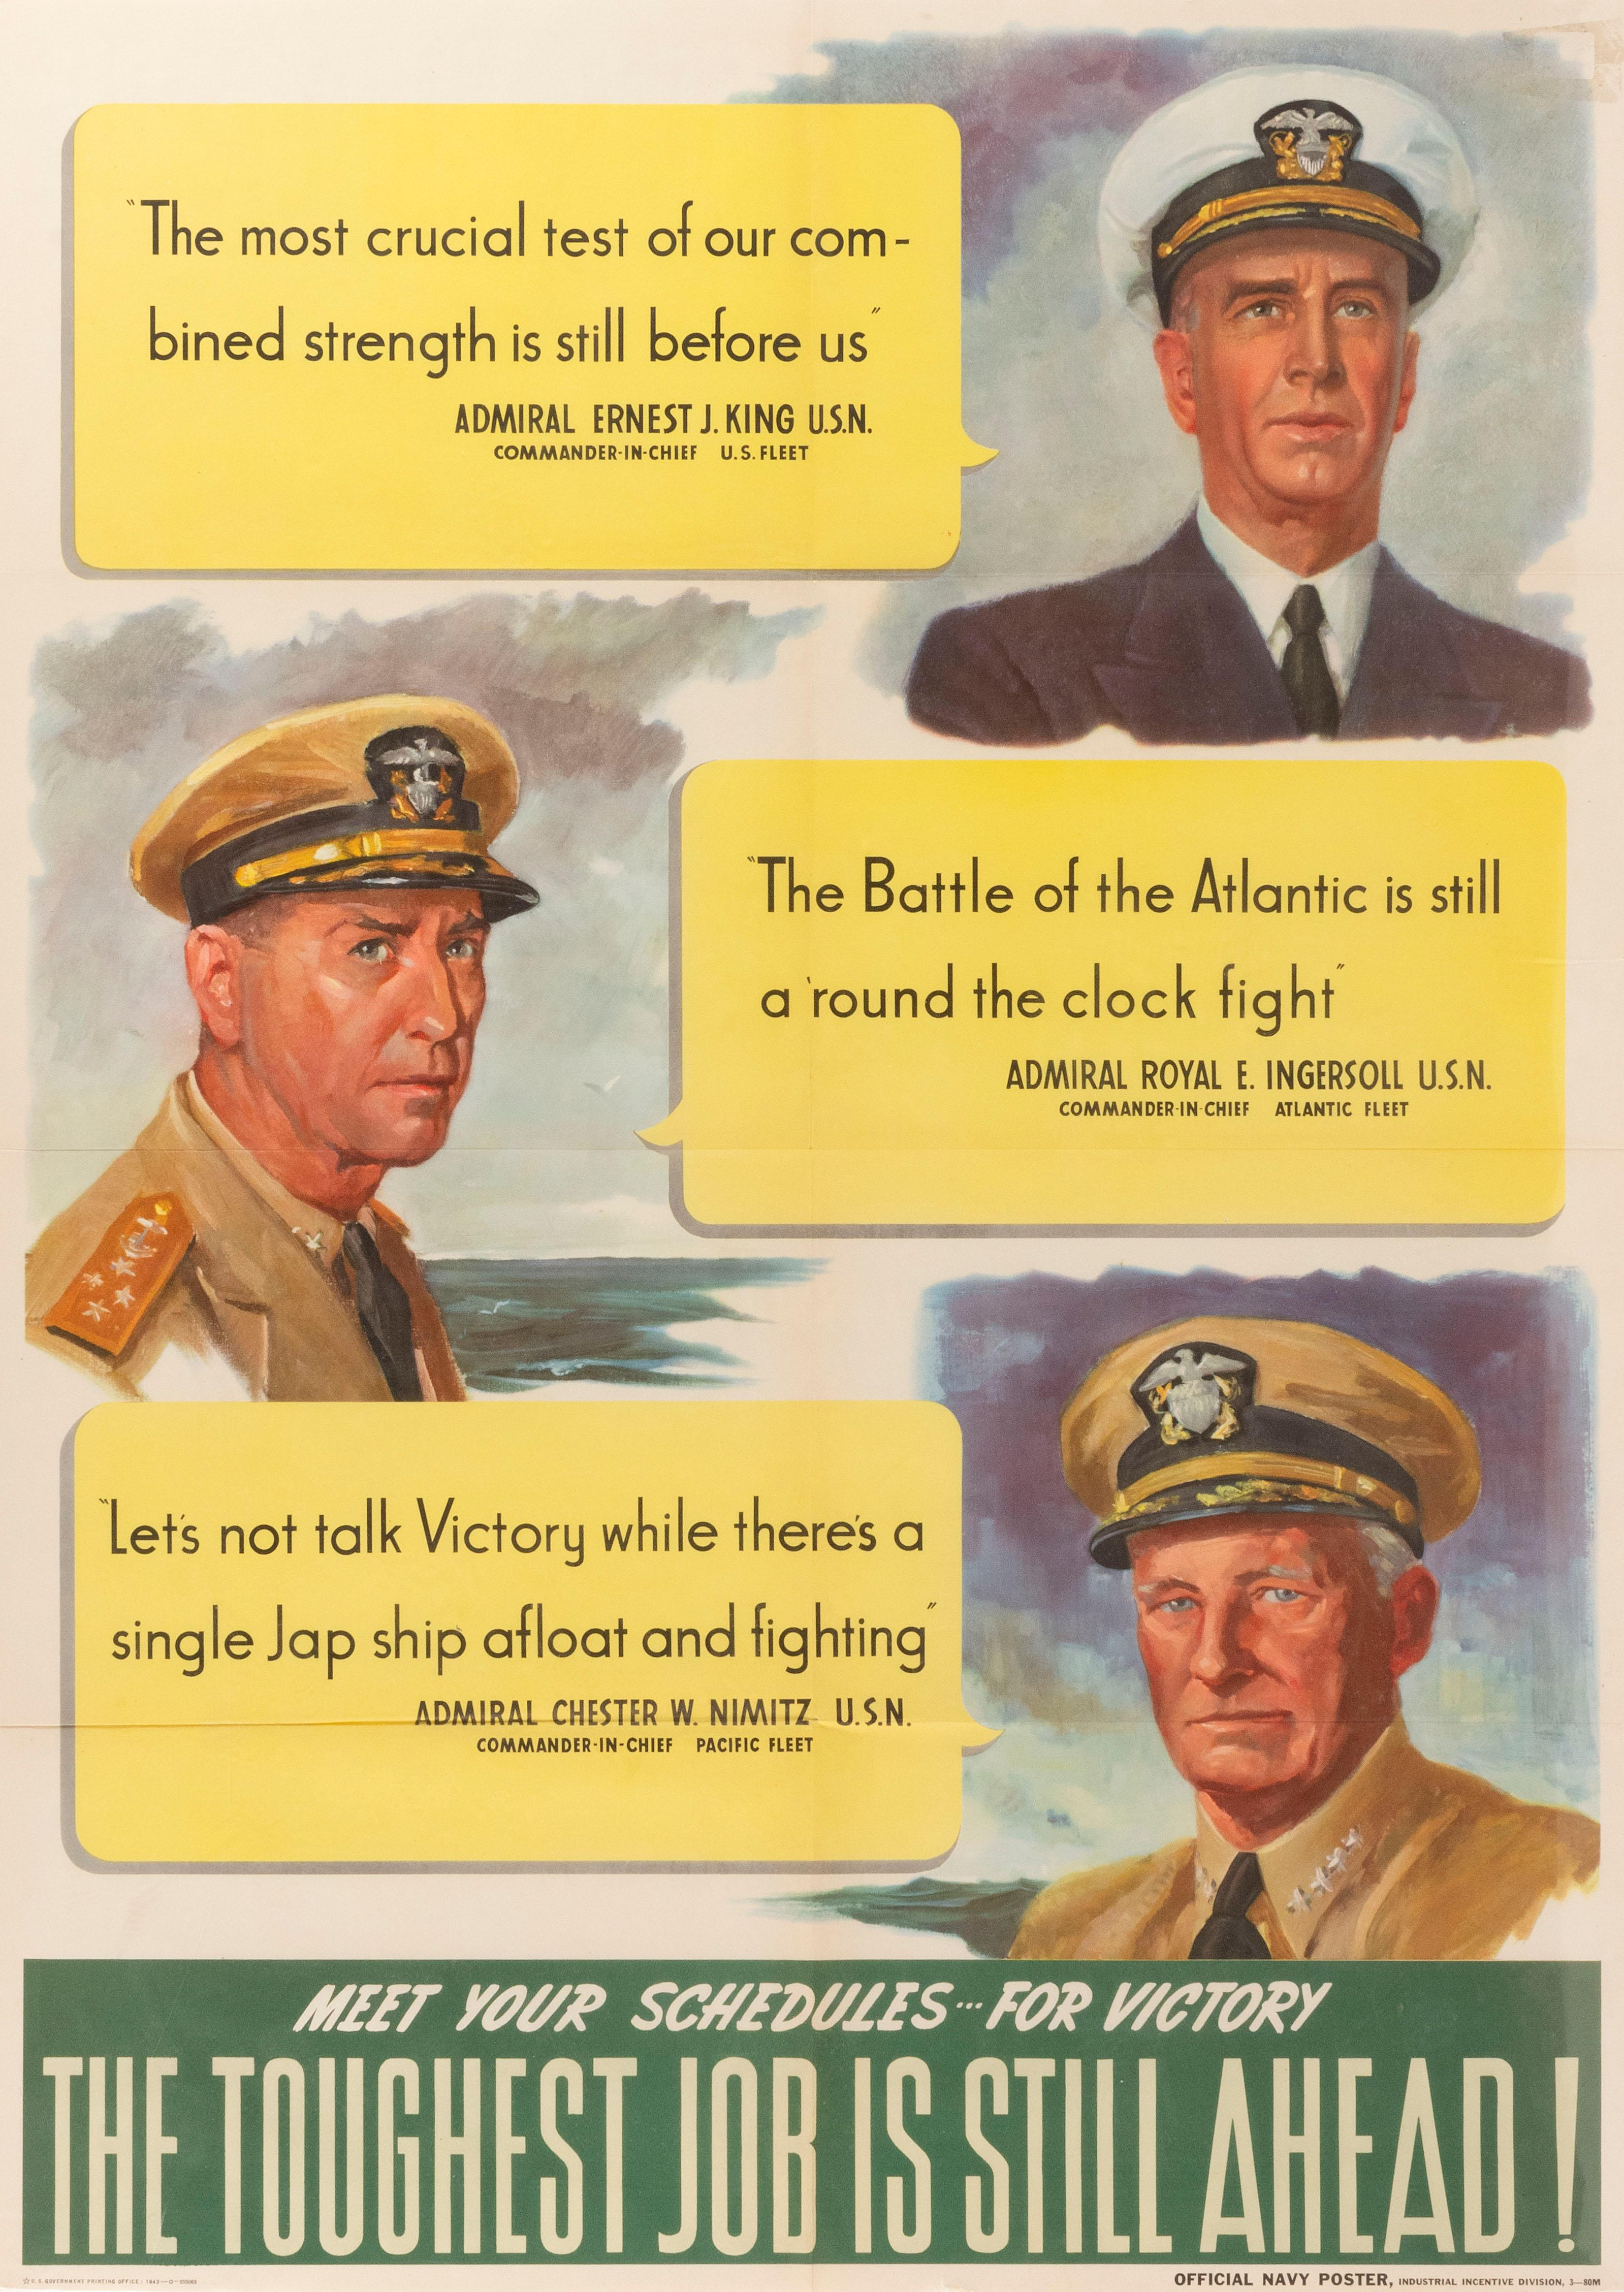 """""""MEET YOUR SCHEDULES FOR VICTORY THE TOUGHEST JOB IS STILL AHEAD!"""" WORLD WAR II POSTER An """"Official Navy Poster, Industrial Incentiv..."""